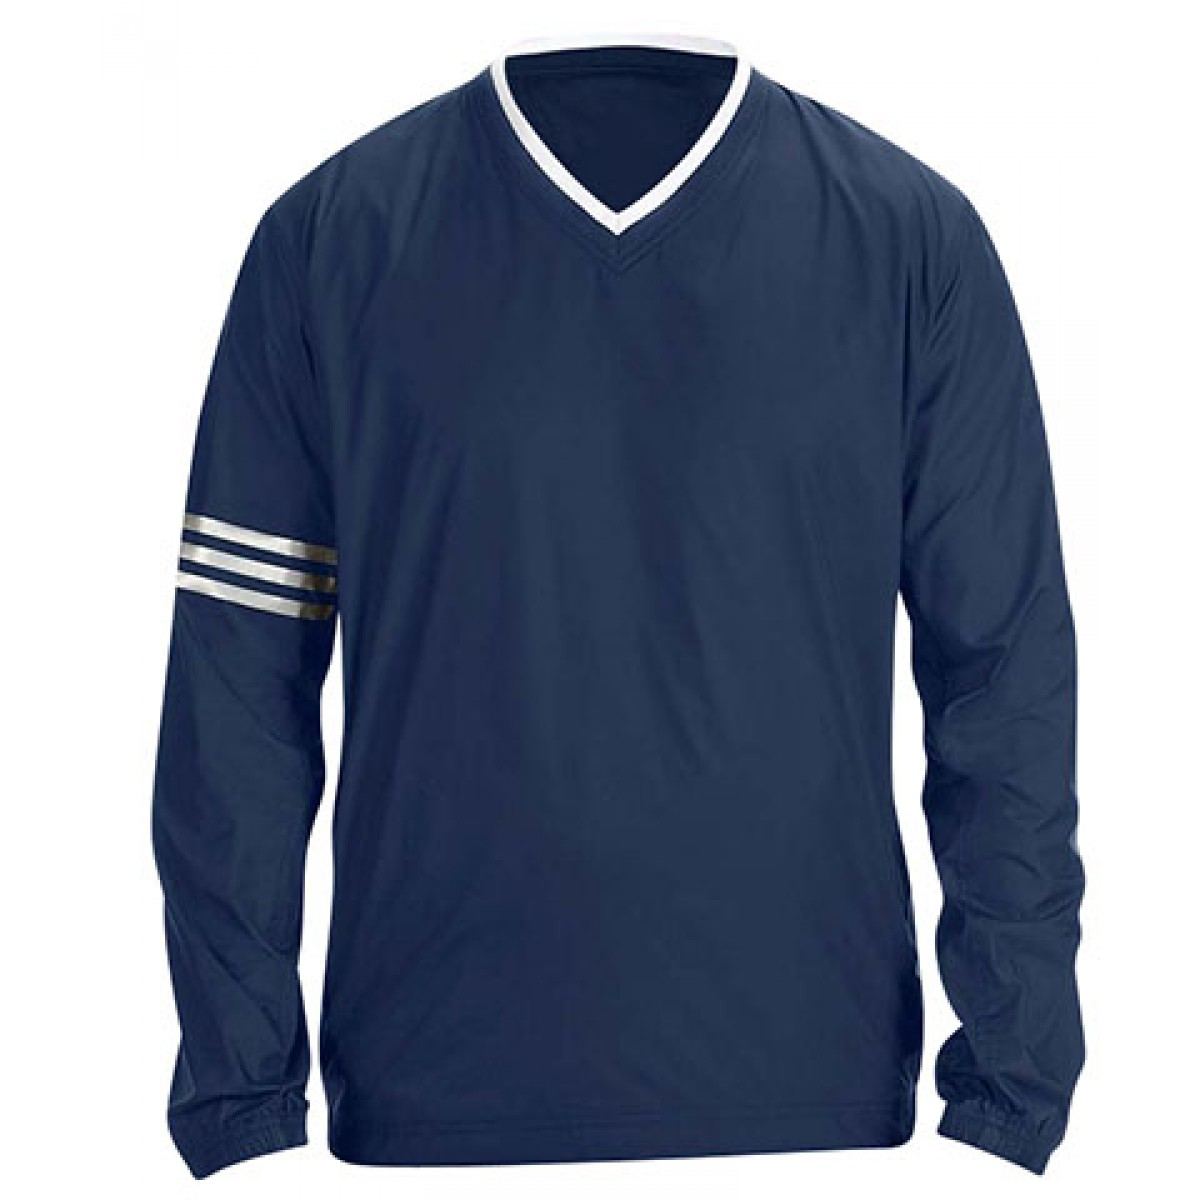 Adidas ClimaLite V-Neck Long Sleeve Wind Shirt-Navy-XL